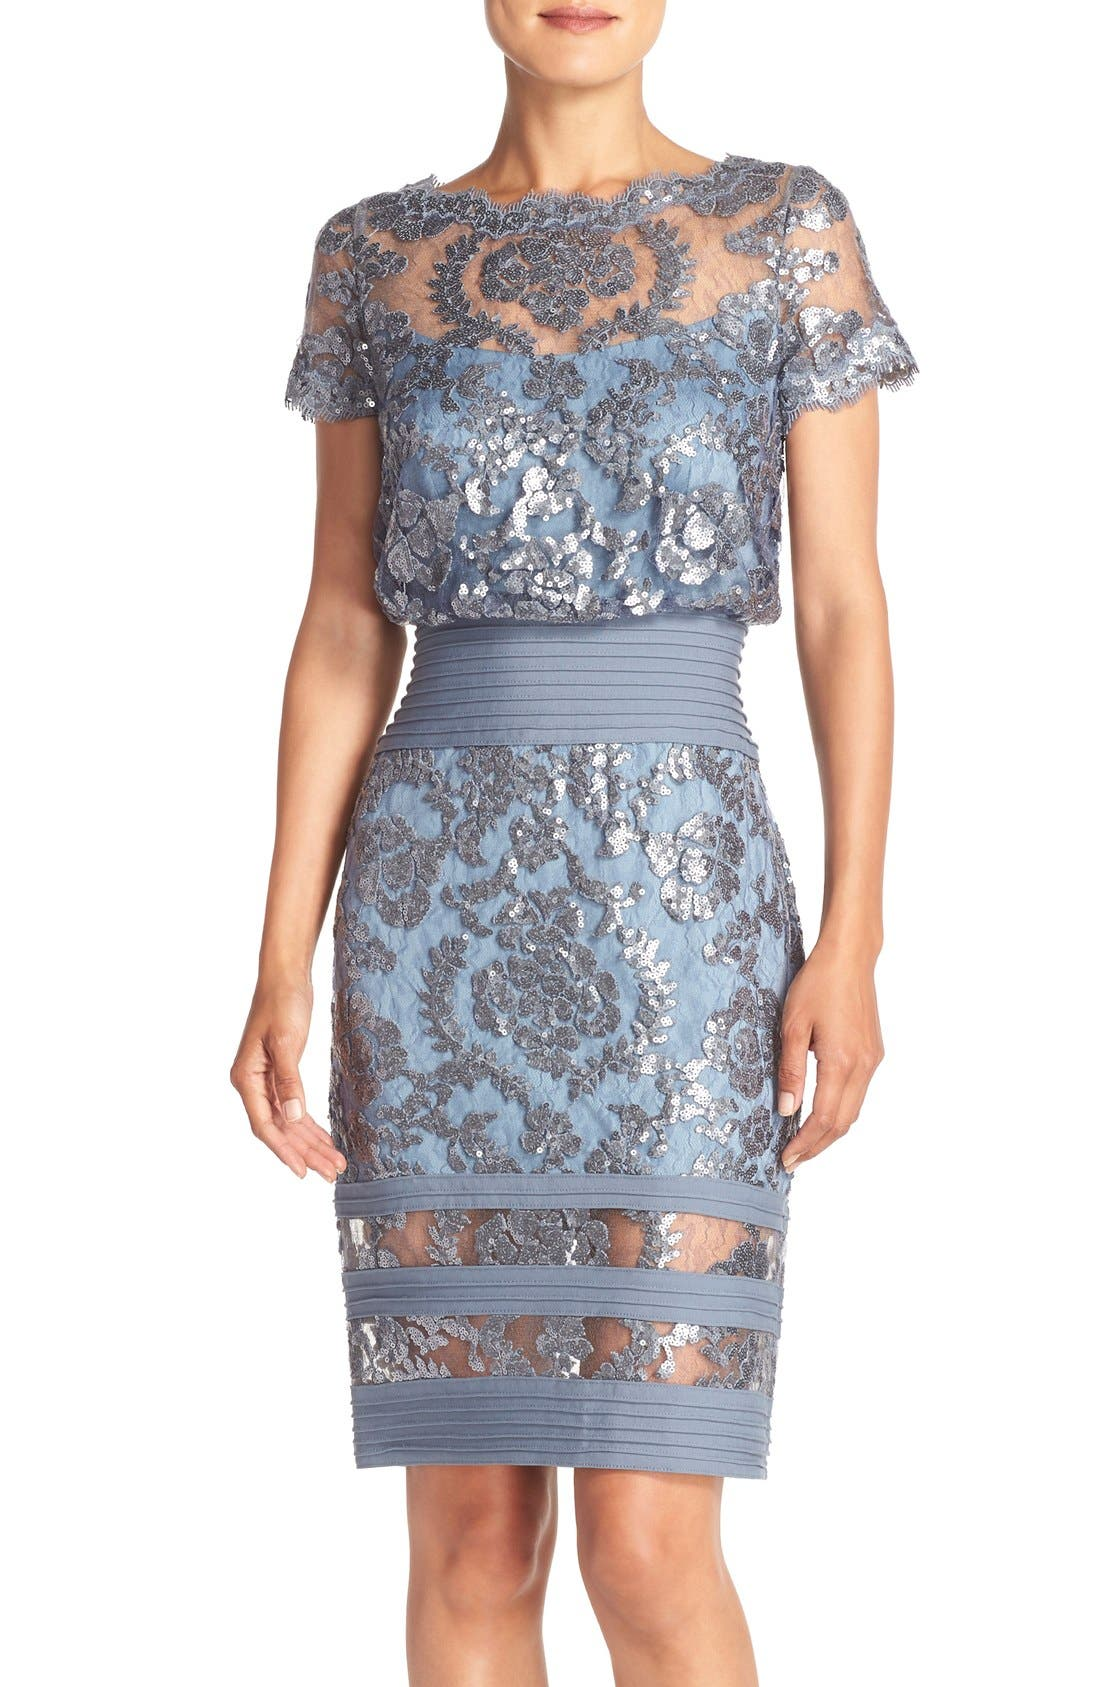 Main Image - Tadashi Shoji Sequin Embroidered Blouson Dress (Regular & Petite)